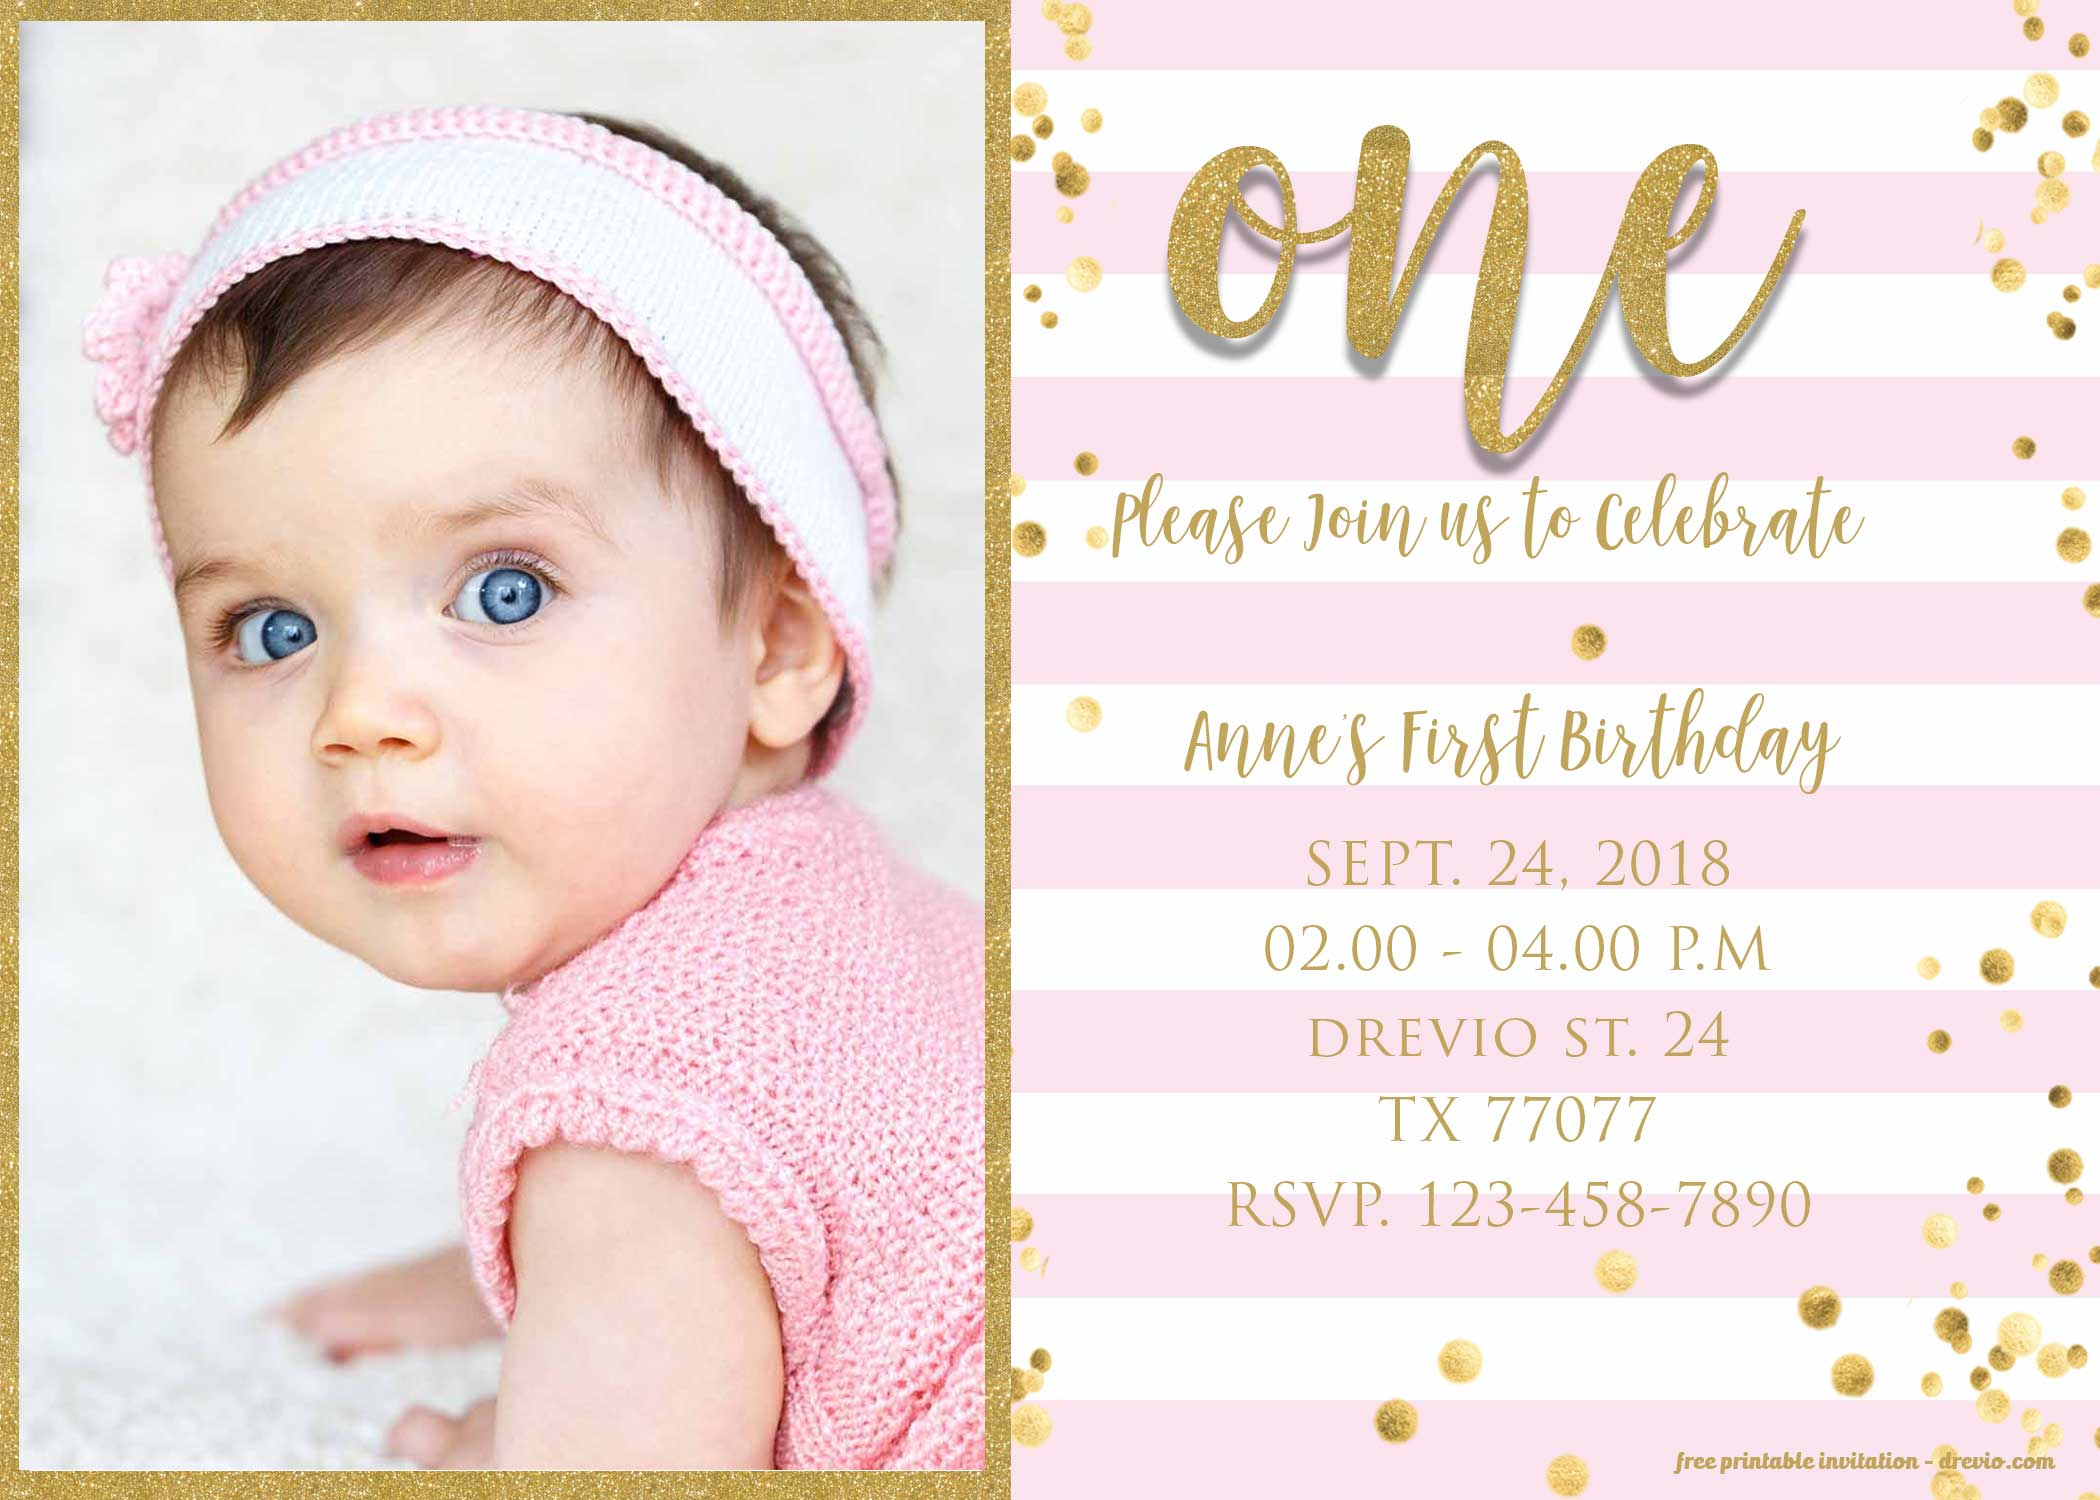 Free 1st Birthday Invitation Pink And Gold Glitter Template Download Hundreds Free Printable Birthday Invitation Templates